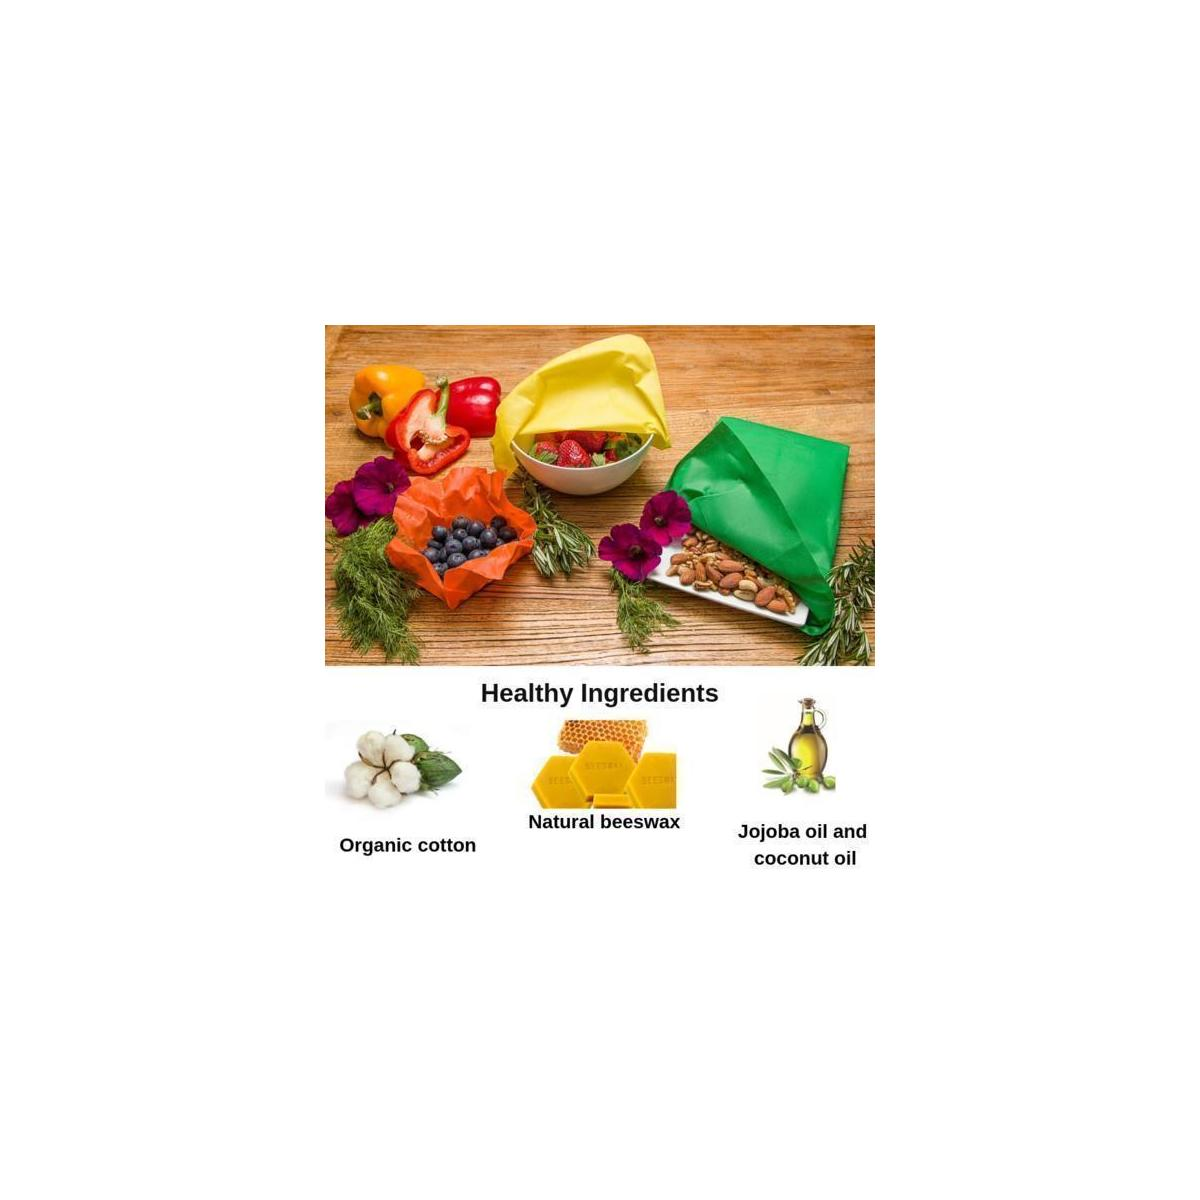 Earthical Reusable Beeswax Wraps - 6 Pack (2 Small, 2 Medium, 2 Large) Washable & Eco-Friendly Food Wraps w/Free Mesh Produce White Muslin Drawstring Bags (Set of 3)